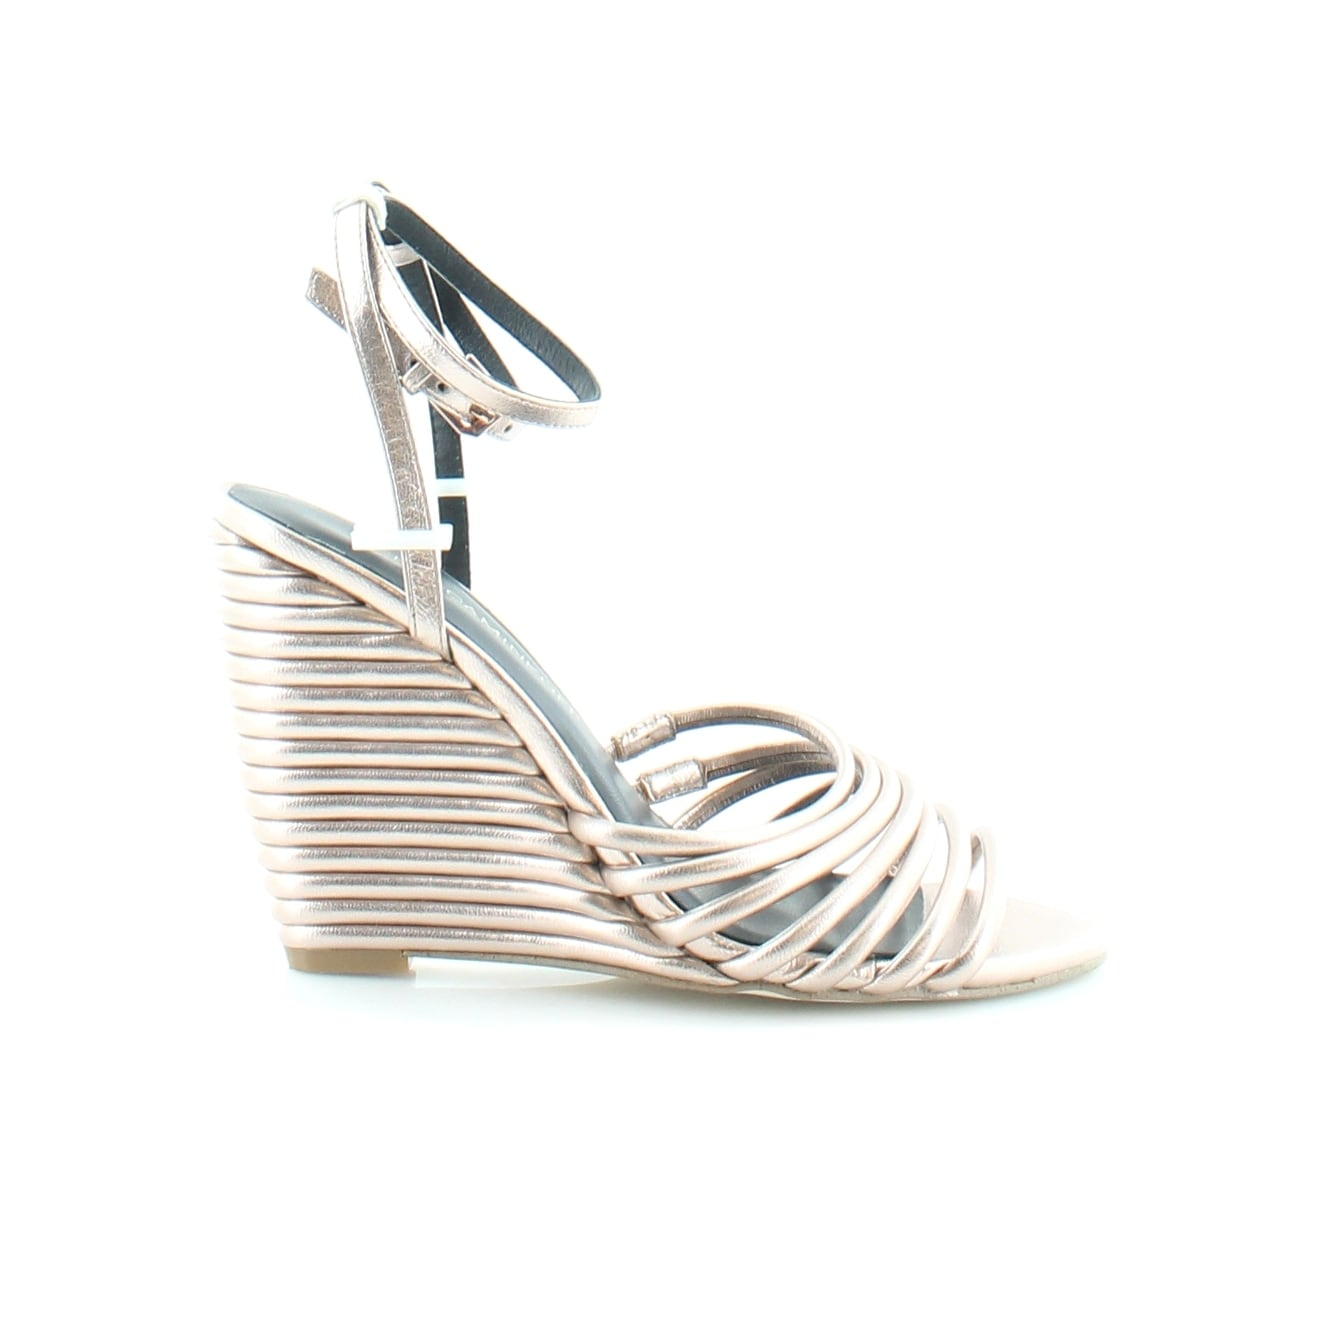 0a529e3f7f5ae Shop Rebecca Minkoff Savannah Women s Heels Rose Gold Metallic - Free  Shipping On Orders Over  45 - Overstock - 21551197